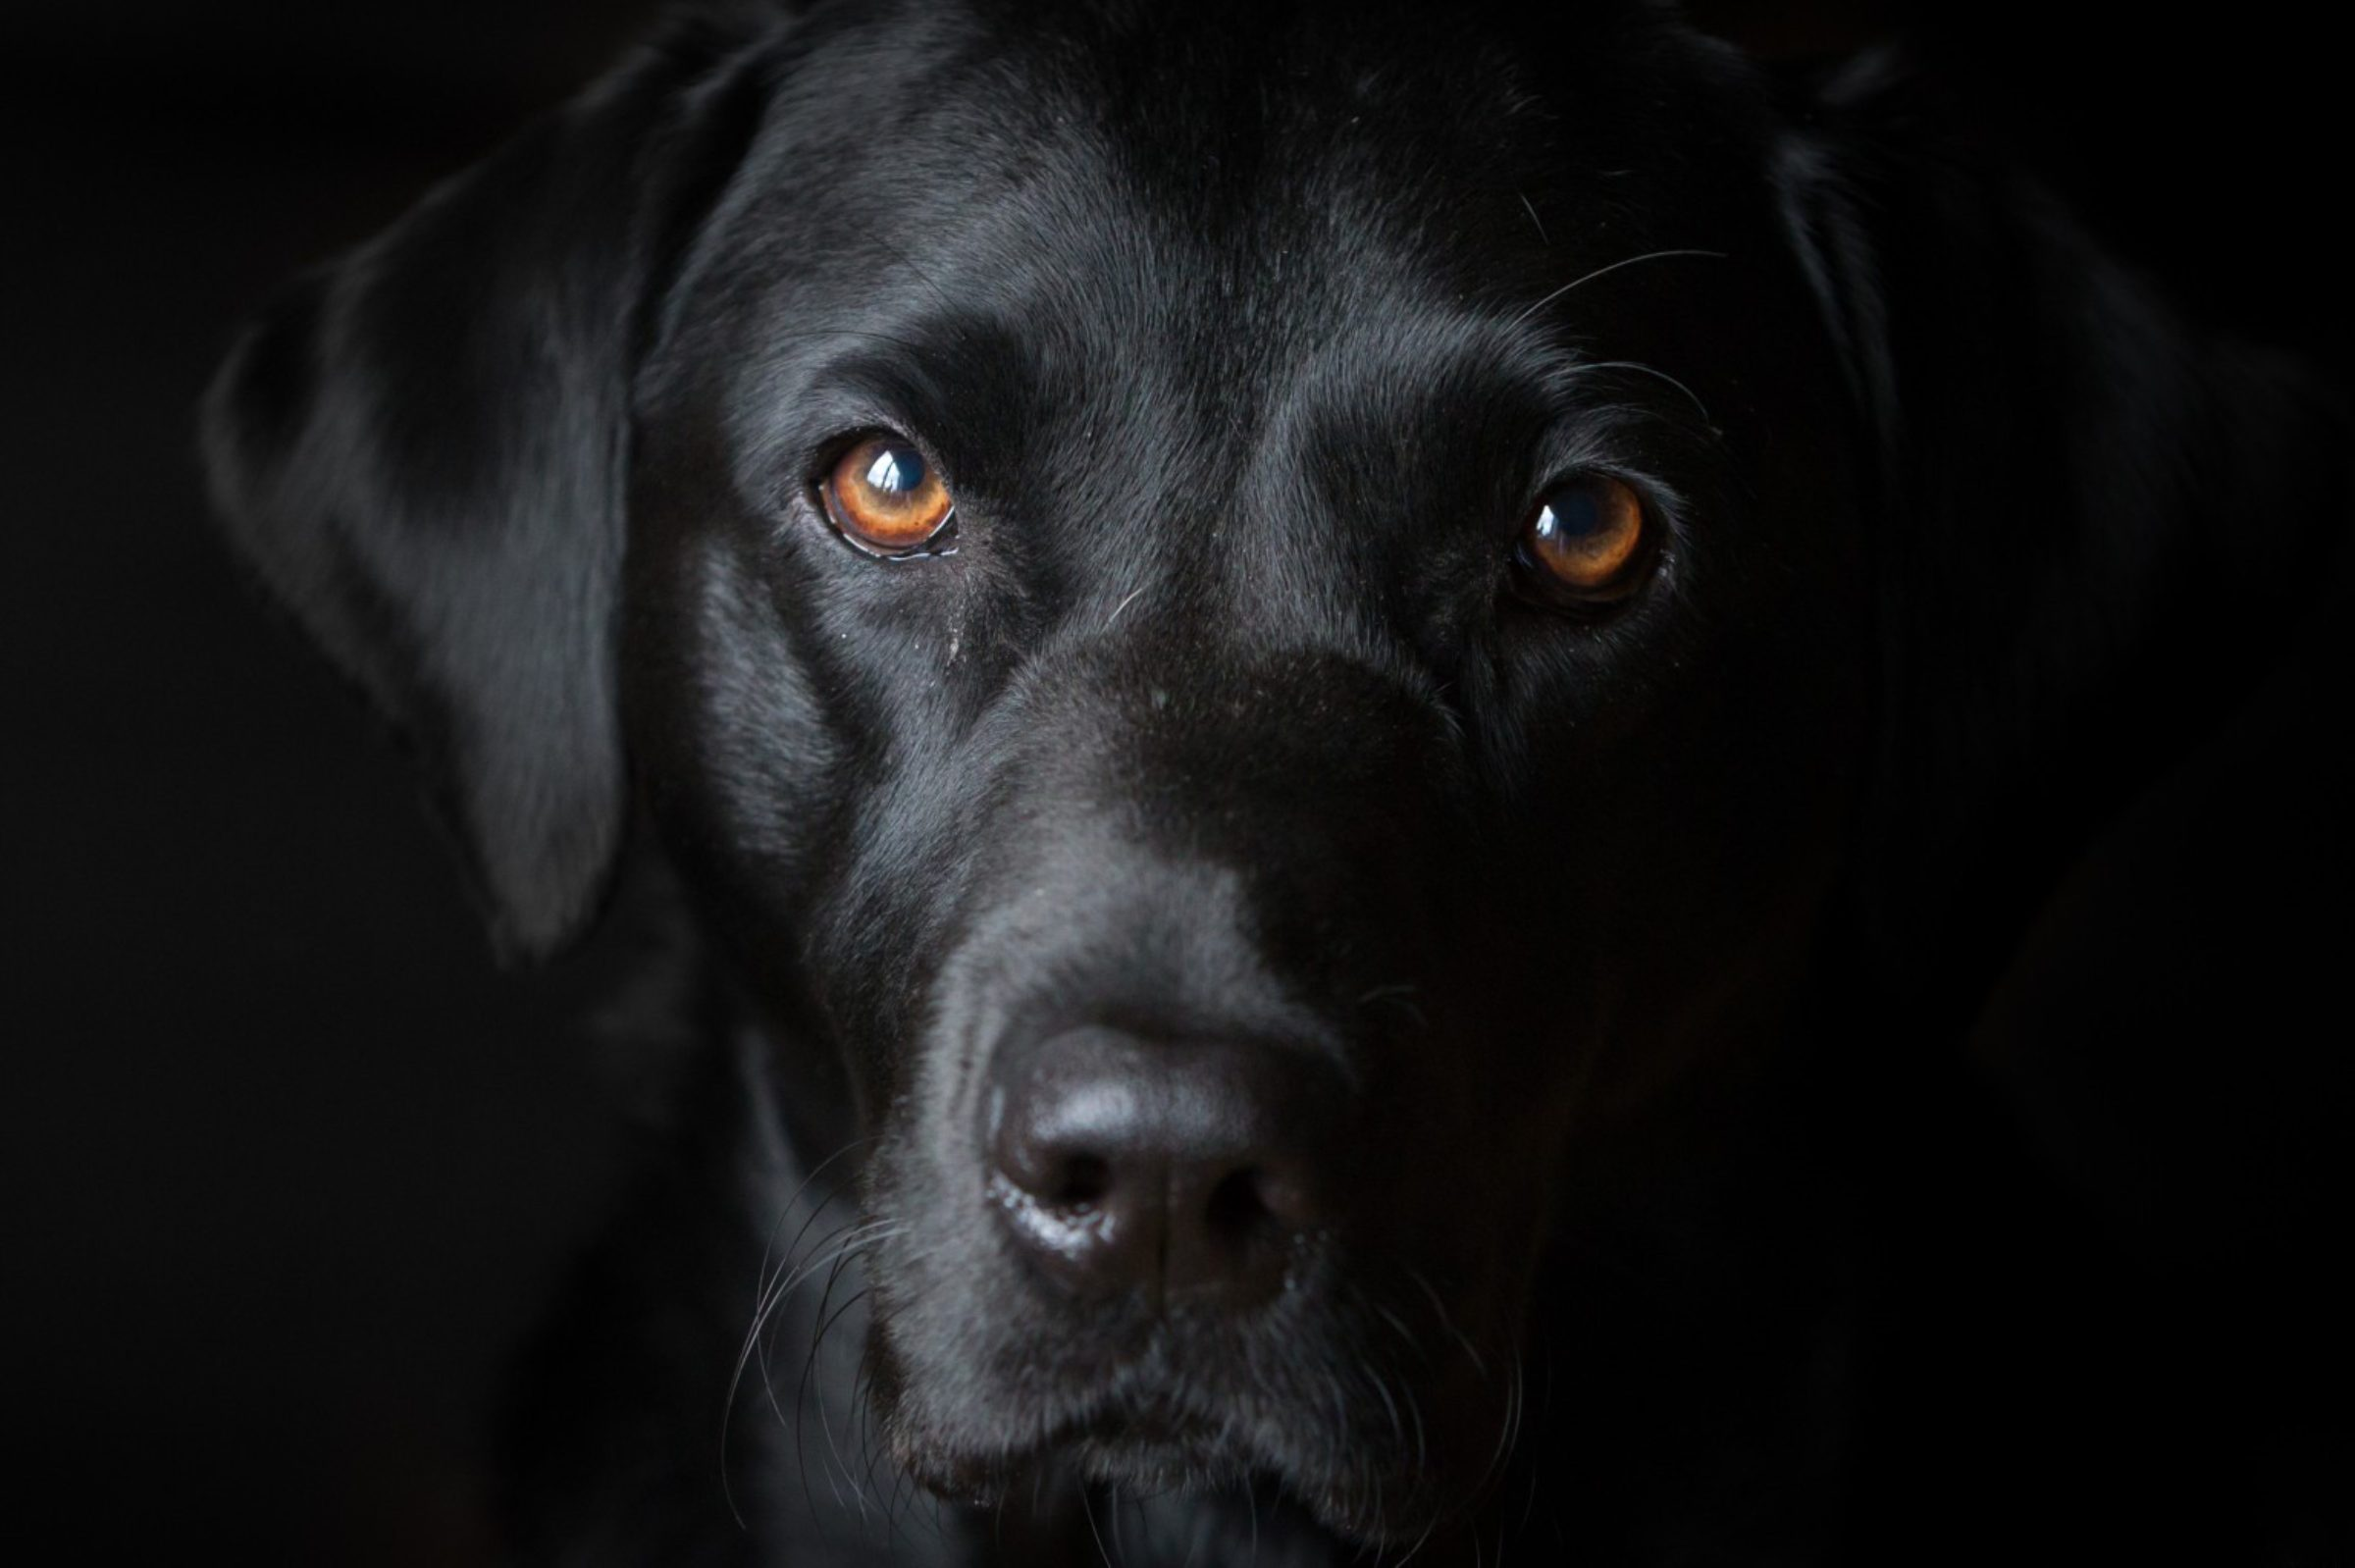 Black dog photo